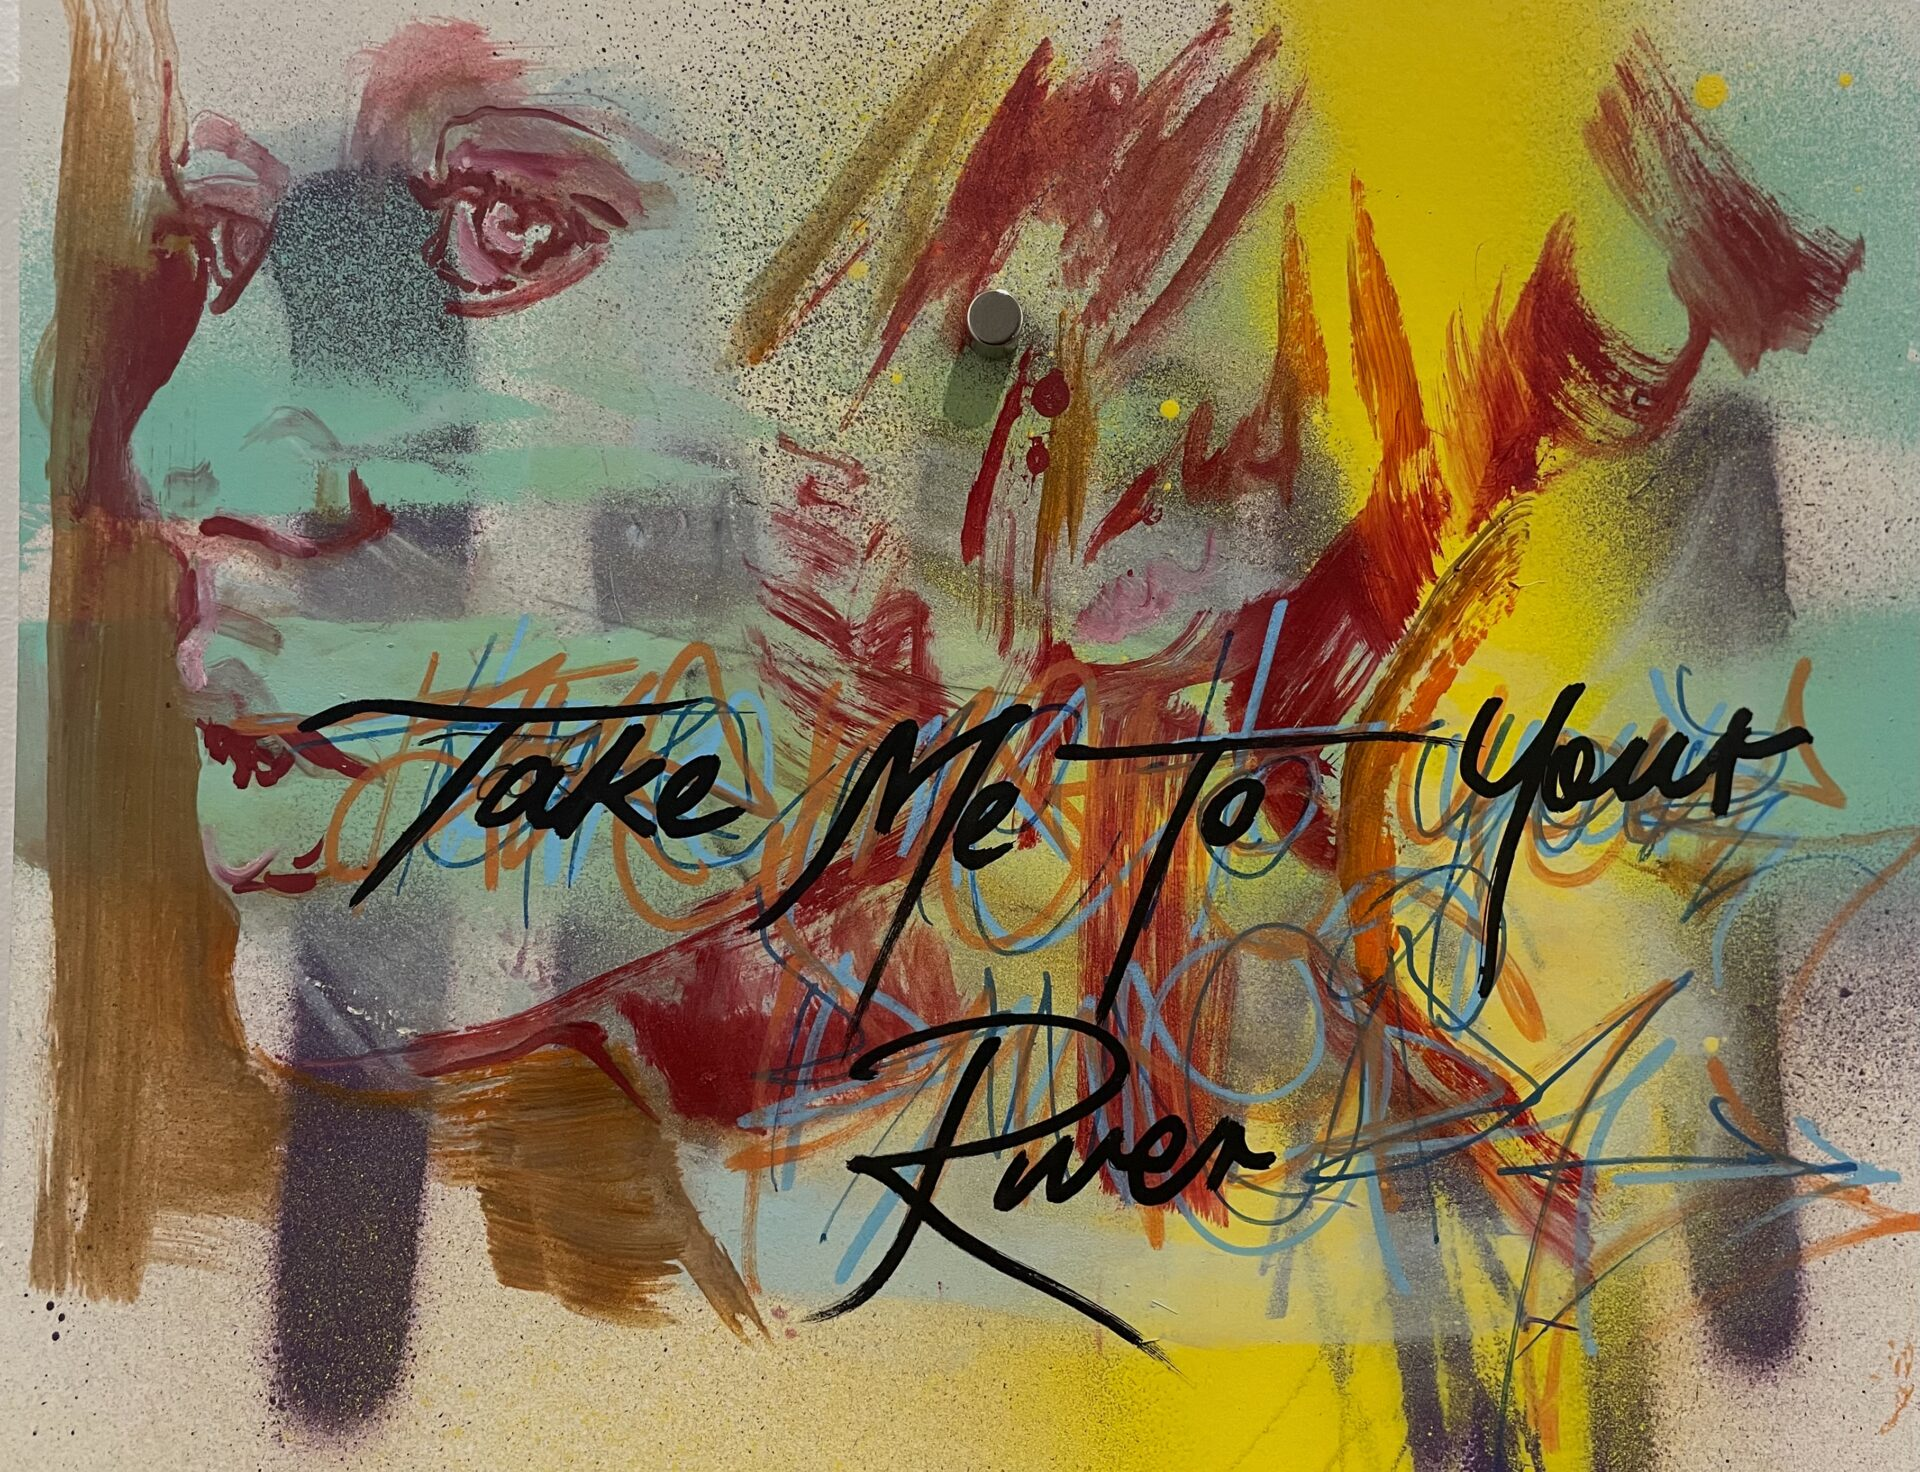 Take Me To Your River By Skye O'Shea, Rebecca Brennan, Kristian Stock Showing In Works On Paper